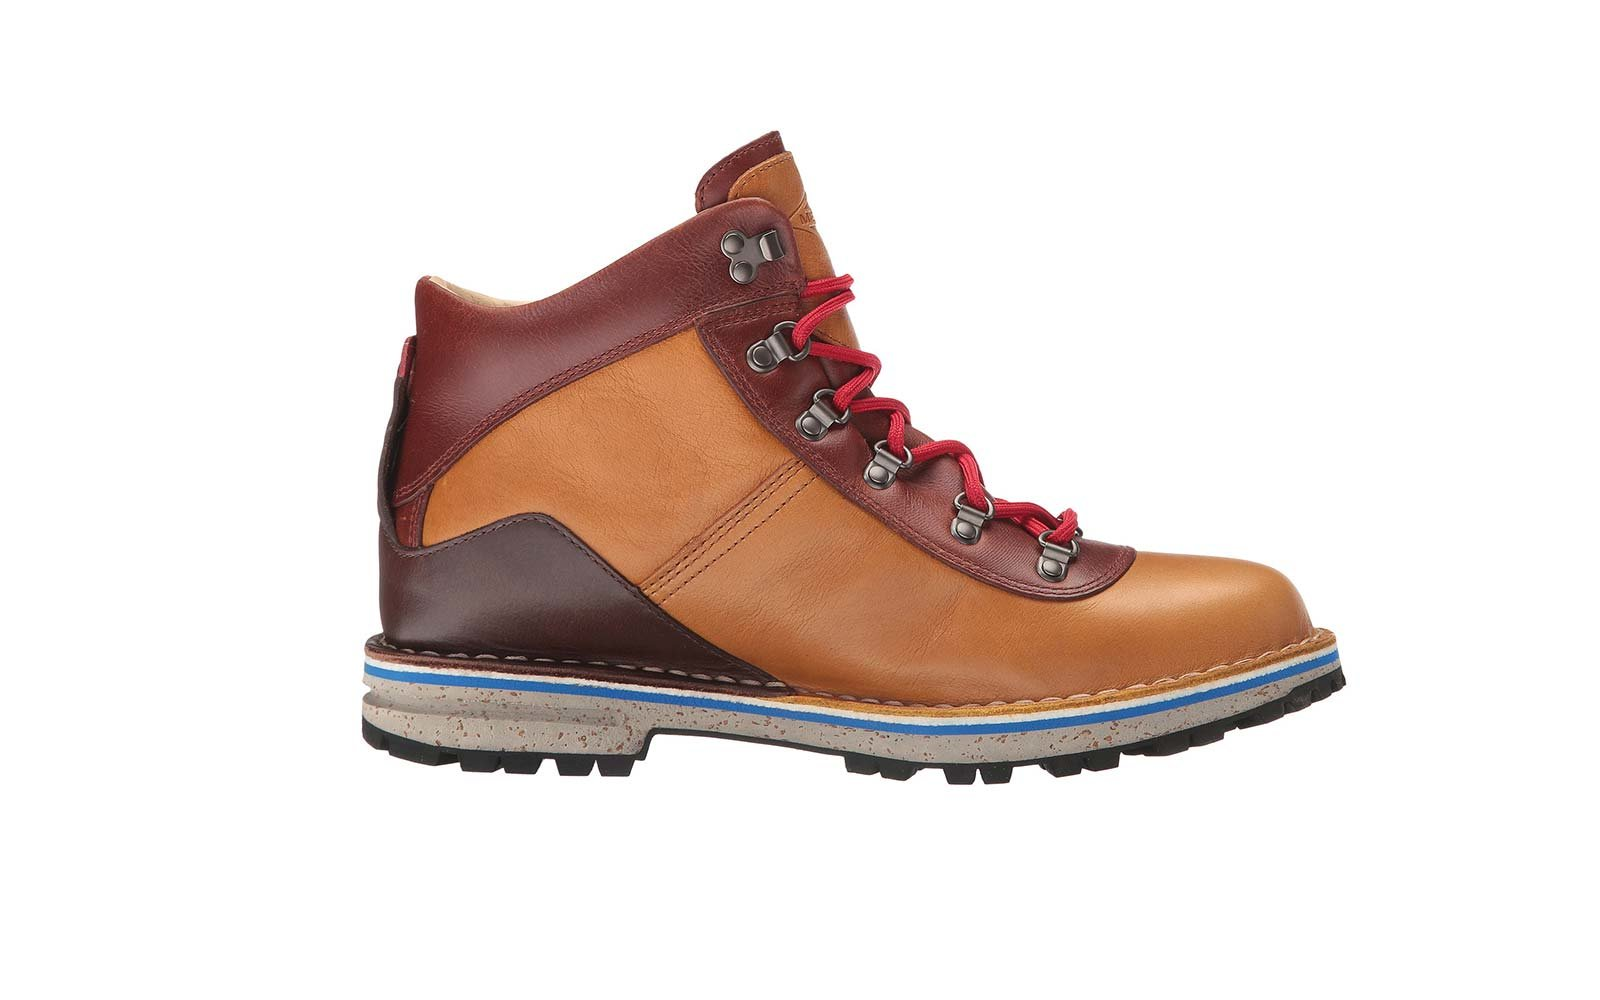 9 Cute Hiking Boots to Take You From Trail to Town  7cda0a632aba